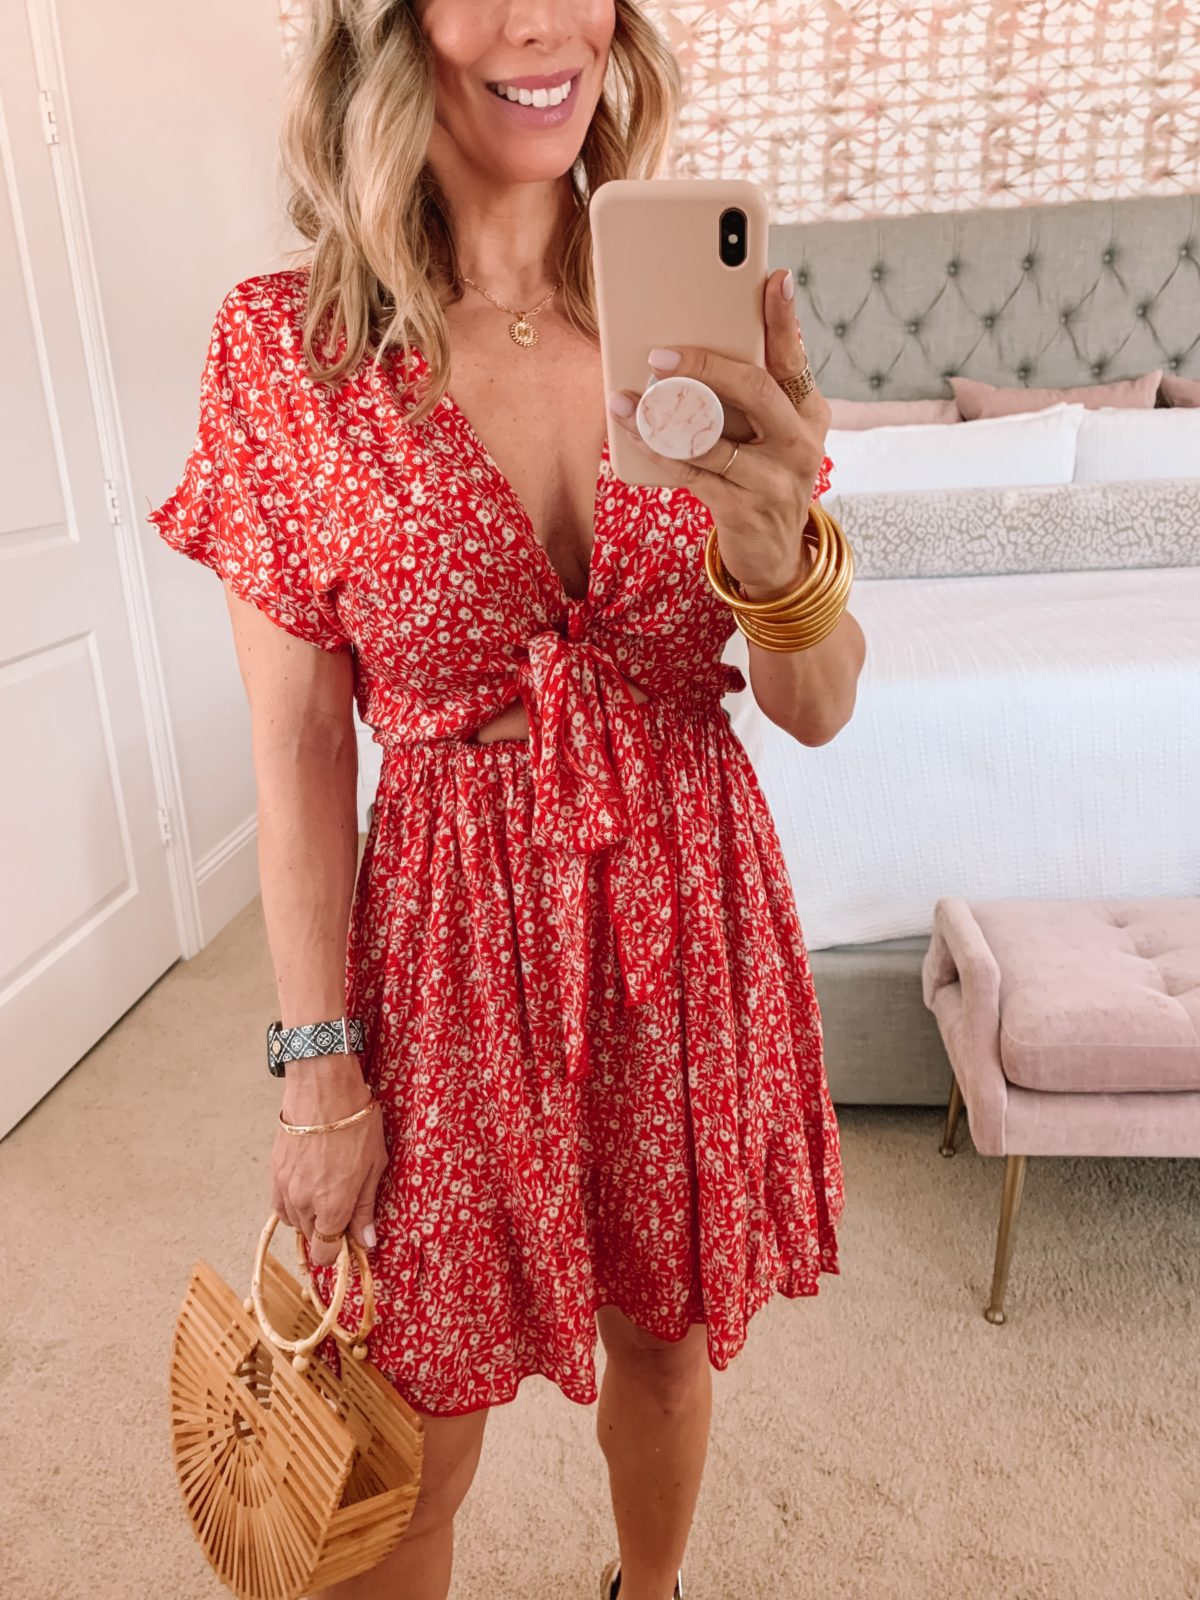 Amazon Fashion Faves Floral Dress with Tie Front, Wedges, Bamboo Clutch